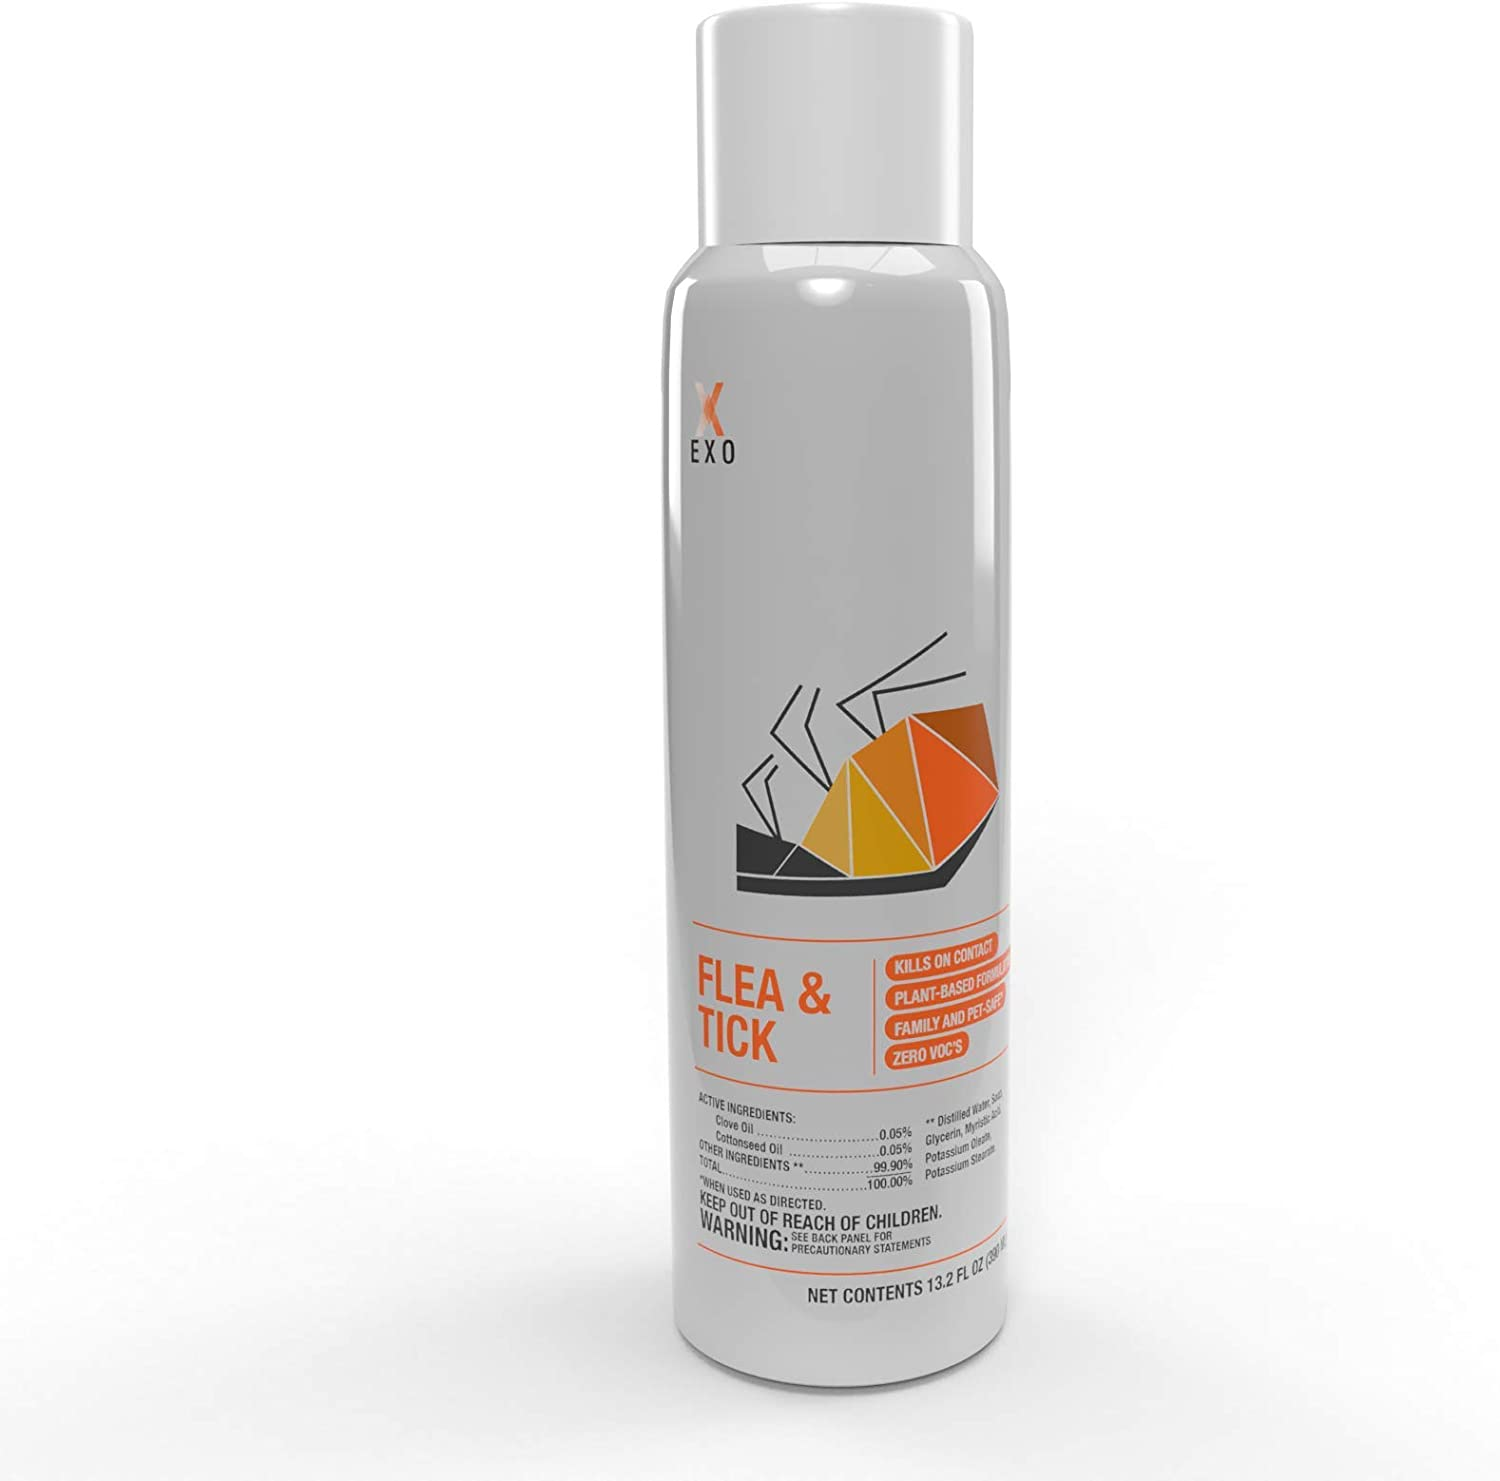 Pyur Solutions EXO Insecticide Non-Toxic, Flea and Tick Killer Biodegradable Spray